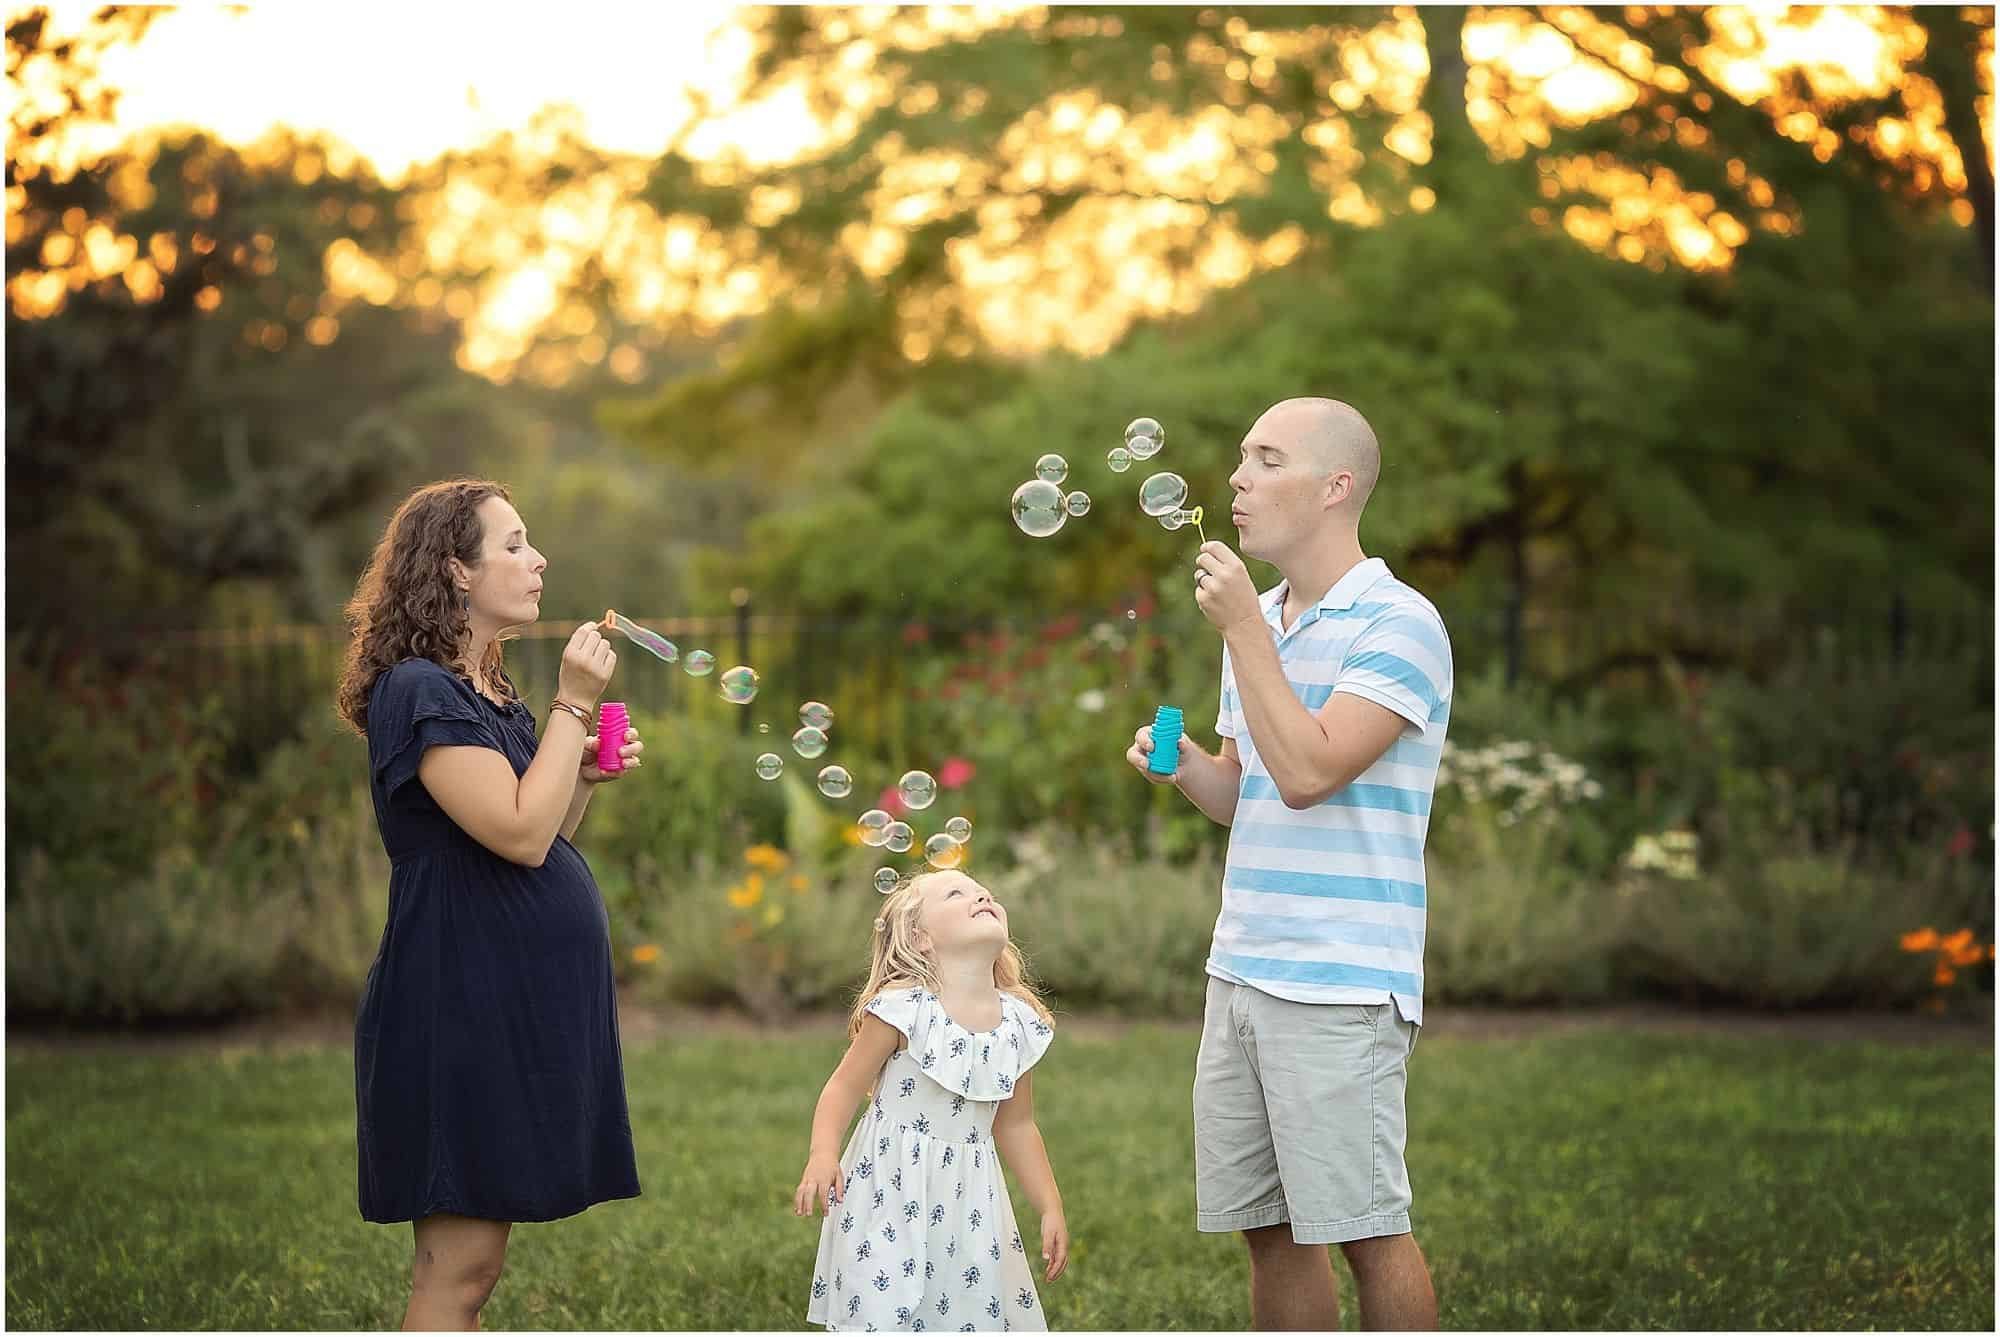 maternity photography at ault park in cincinnati Ohio with Samantha sinchek photography